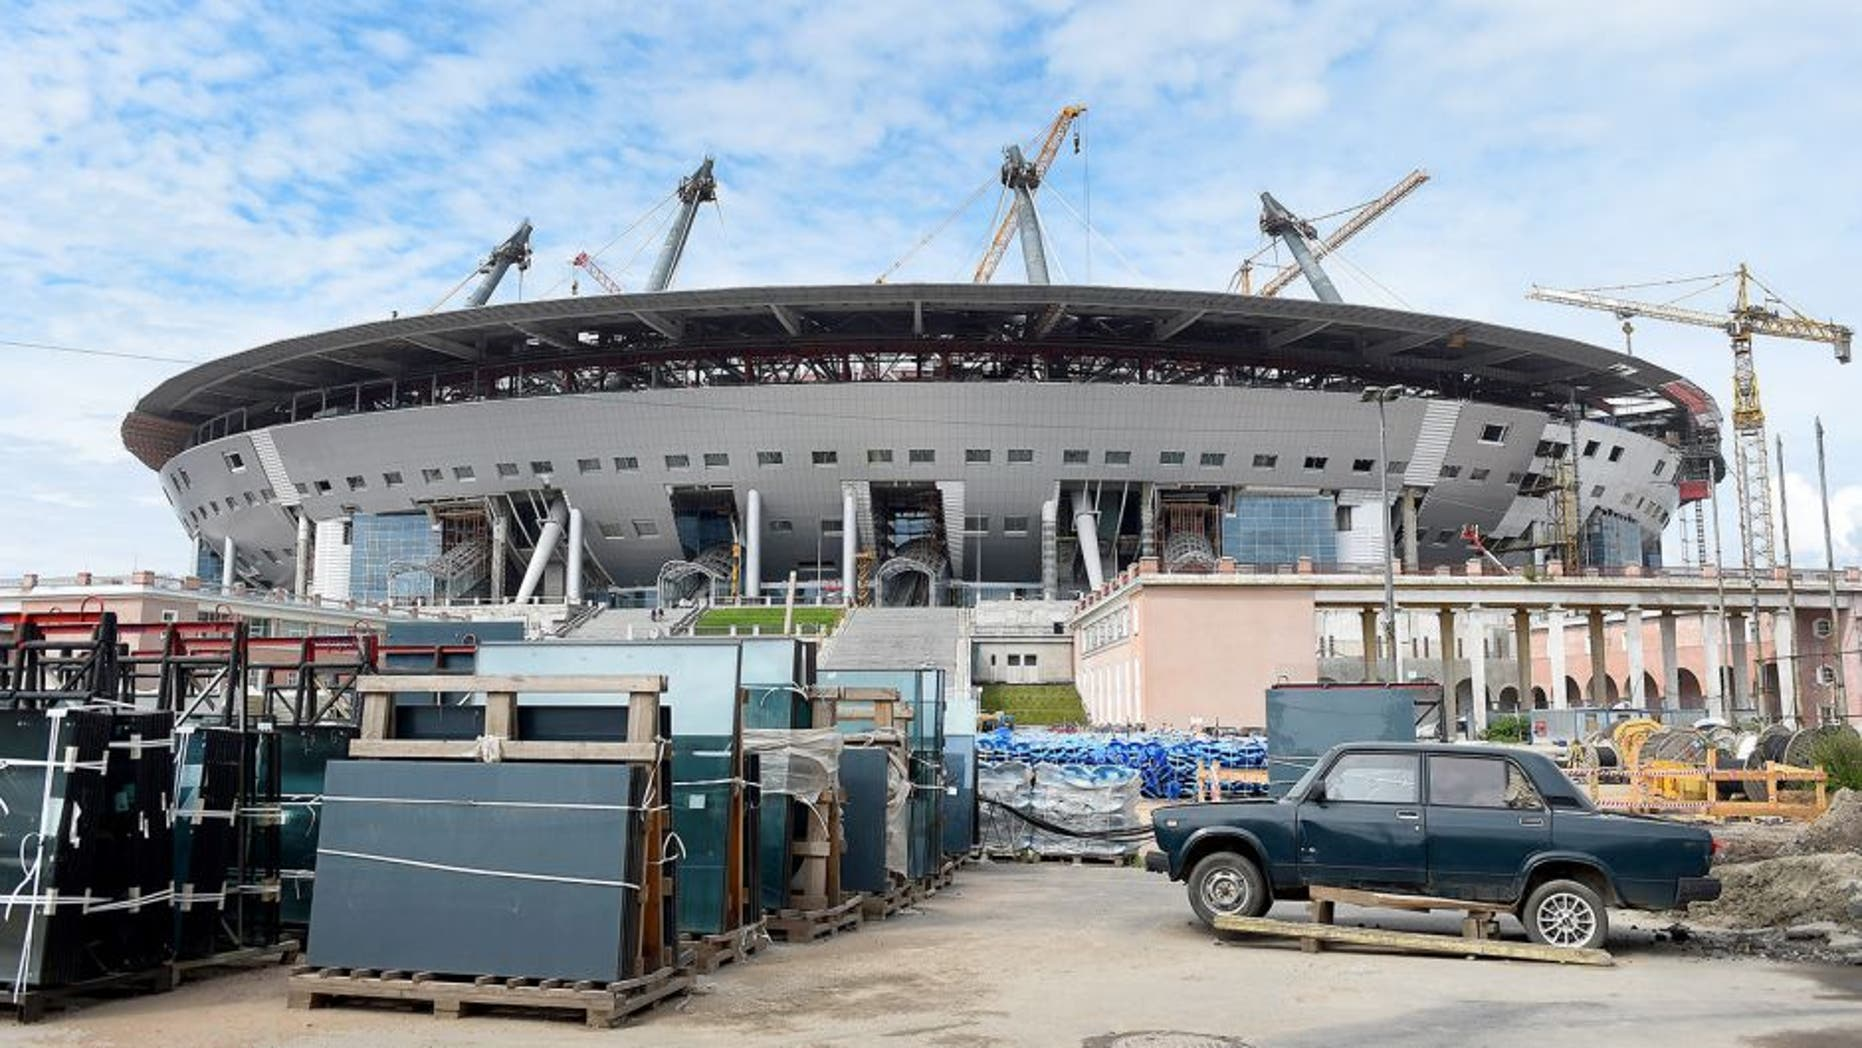 SAINT PETERSBURG, RUSSIA - JULY 20: A general view of the Saint Petersburg Stadium construction site during a media tour of Russia 2018 FIFA World Cup venues on July 20, 2015 in Saint Petersburg, Russia. (Photo by Laurence Griffiths/Getty Images)